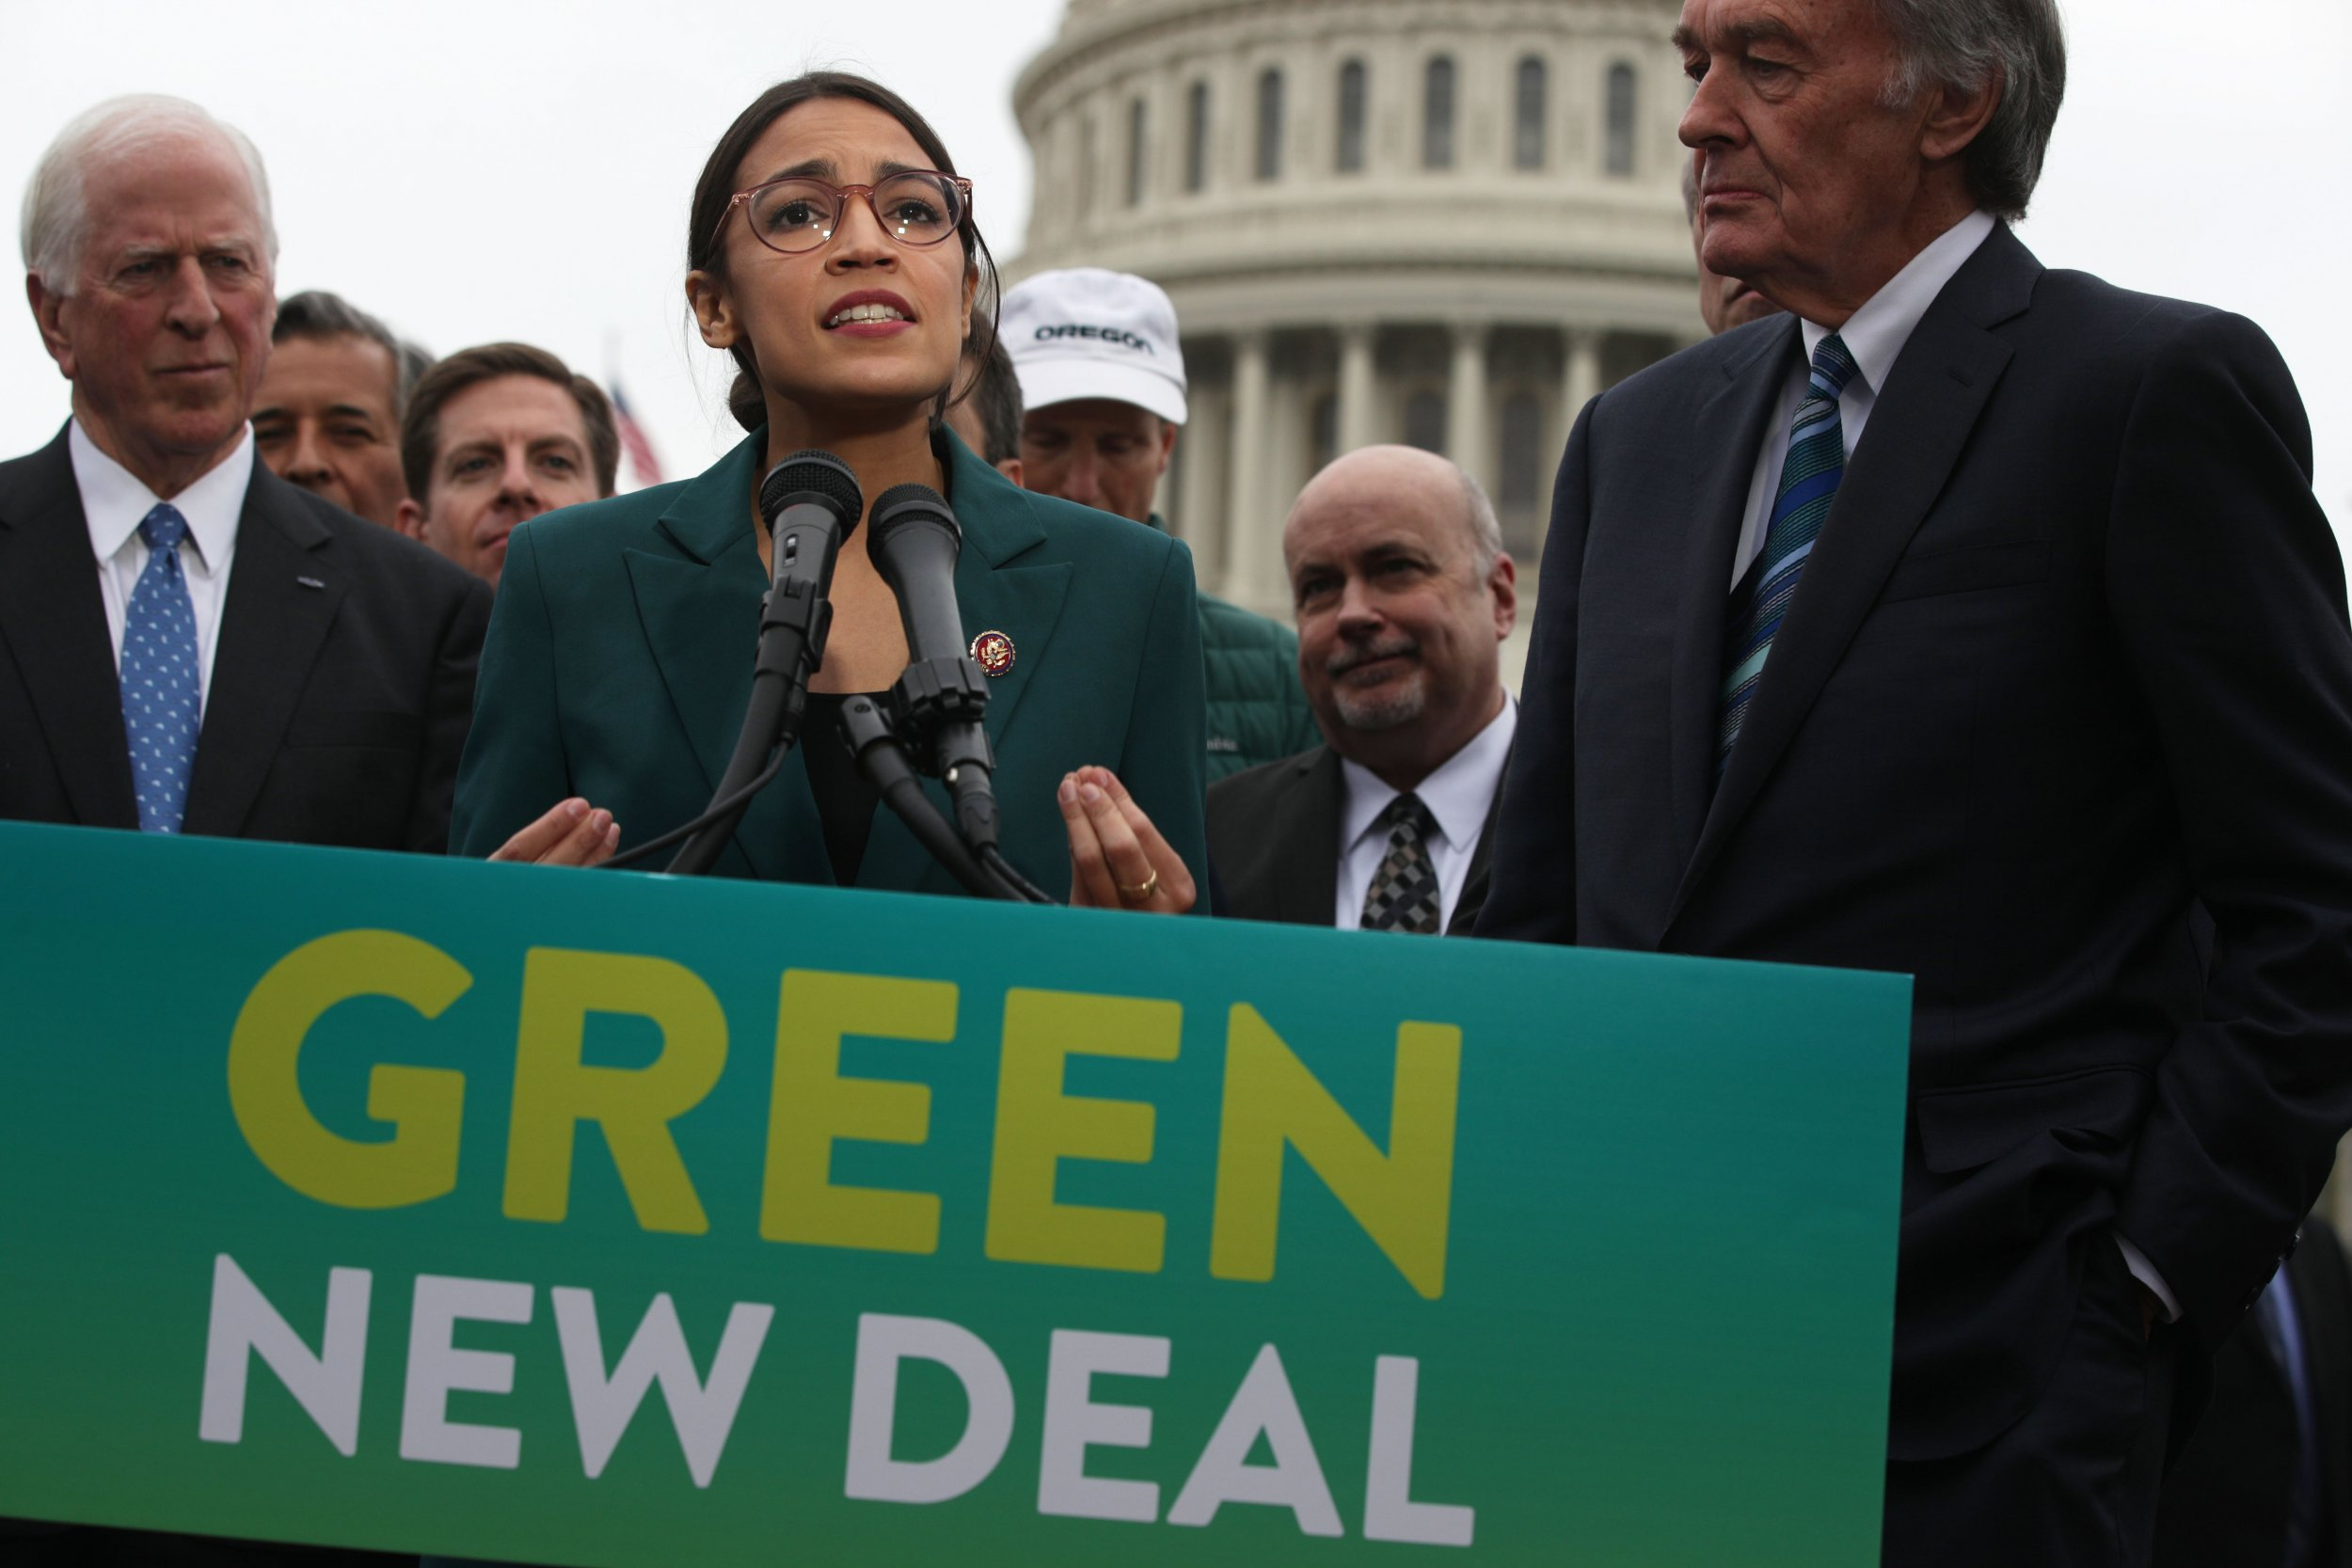 AOC green new deal Europe